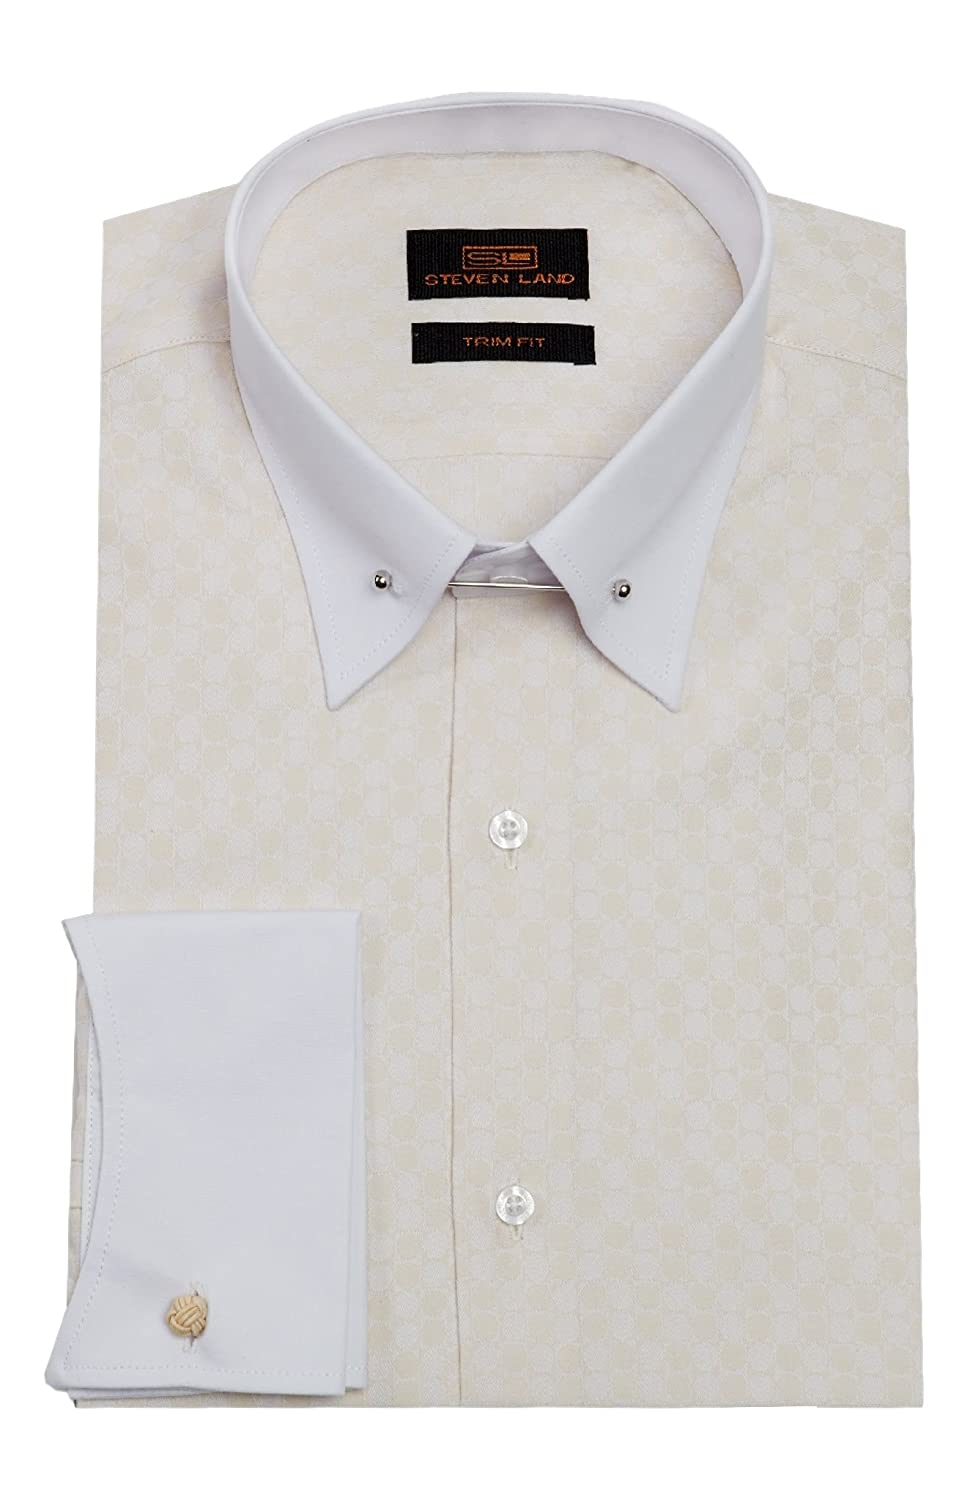 White French Cuff Dress Shirt With Collar Bar Bcd Tofu House